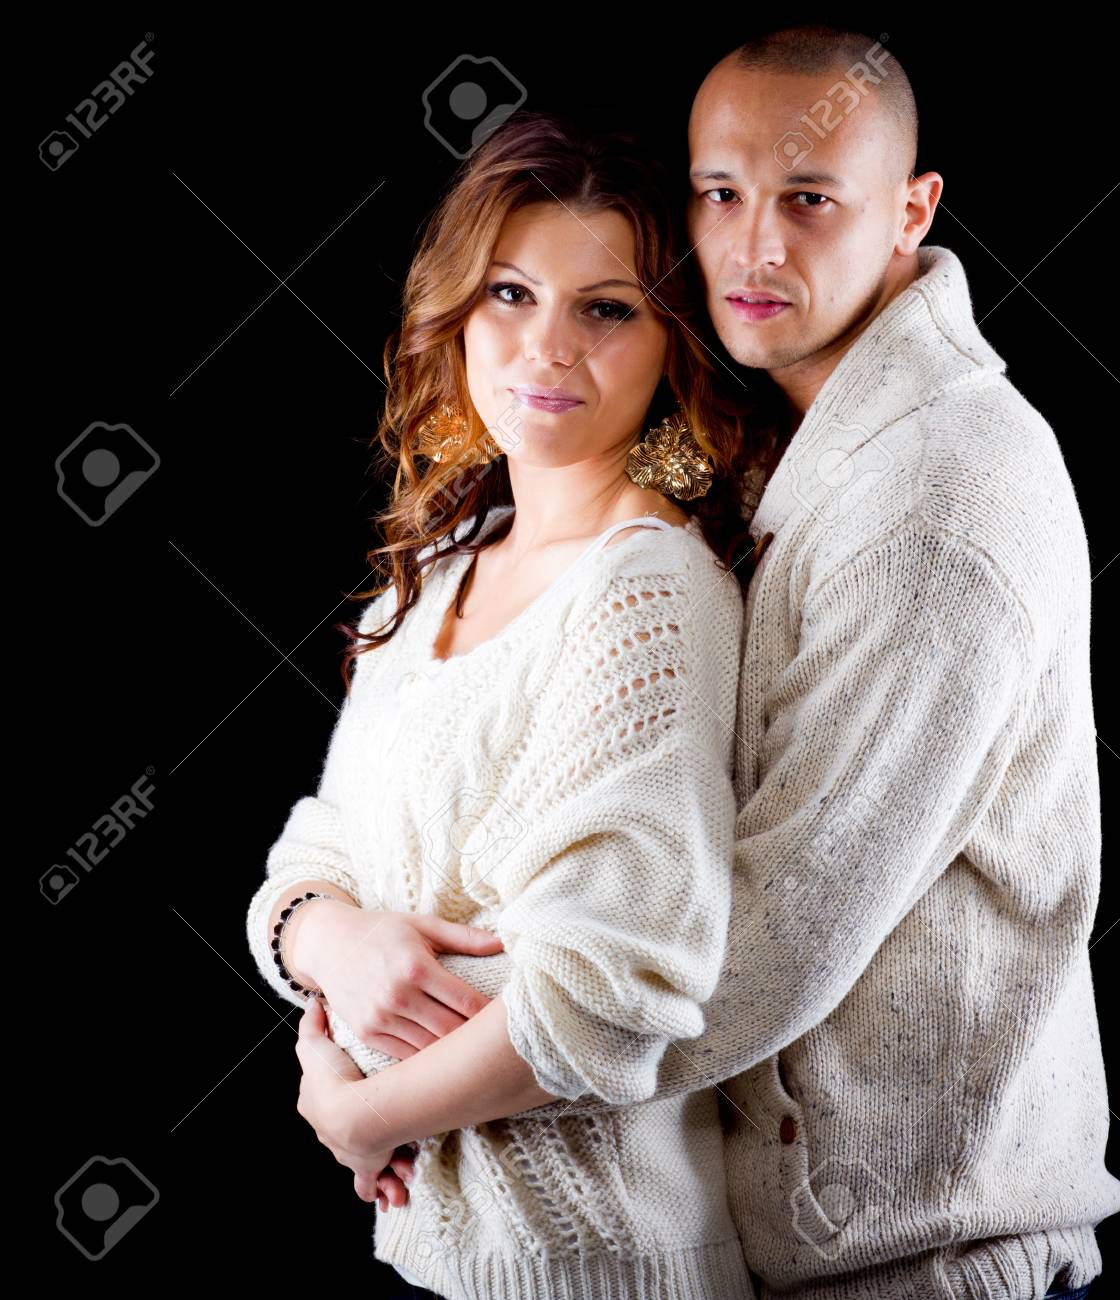 Young interracial cute looking couple over black background Stock Photo - 12654596